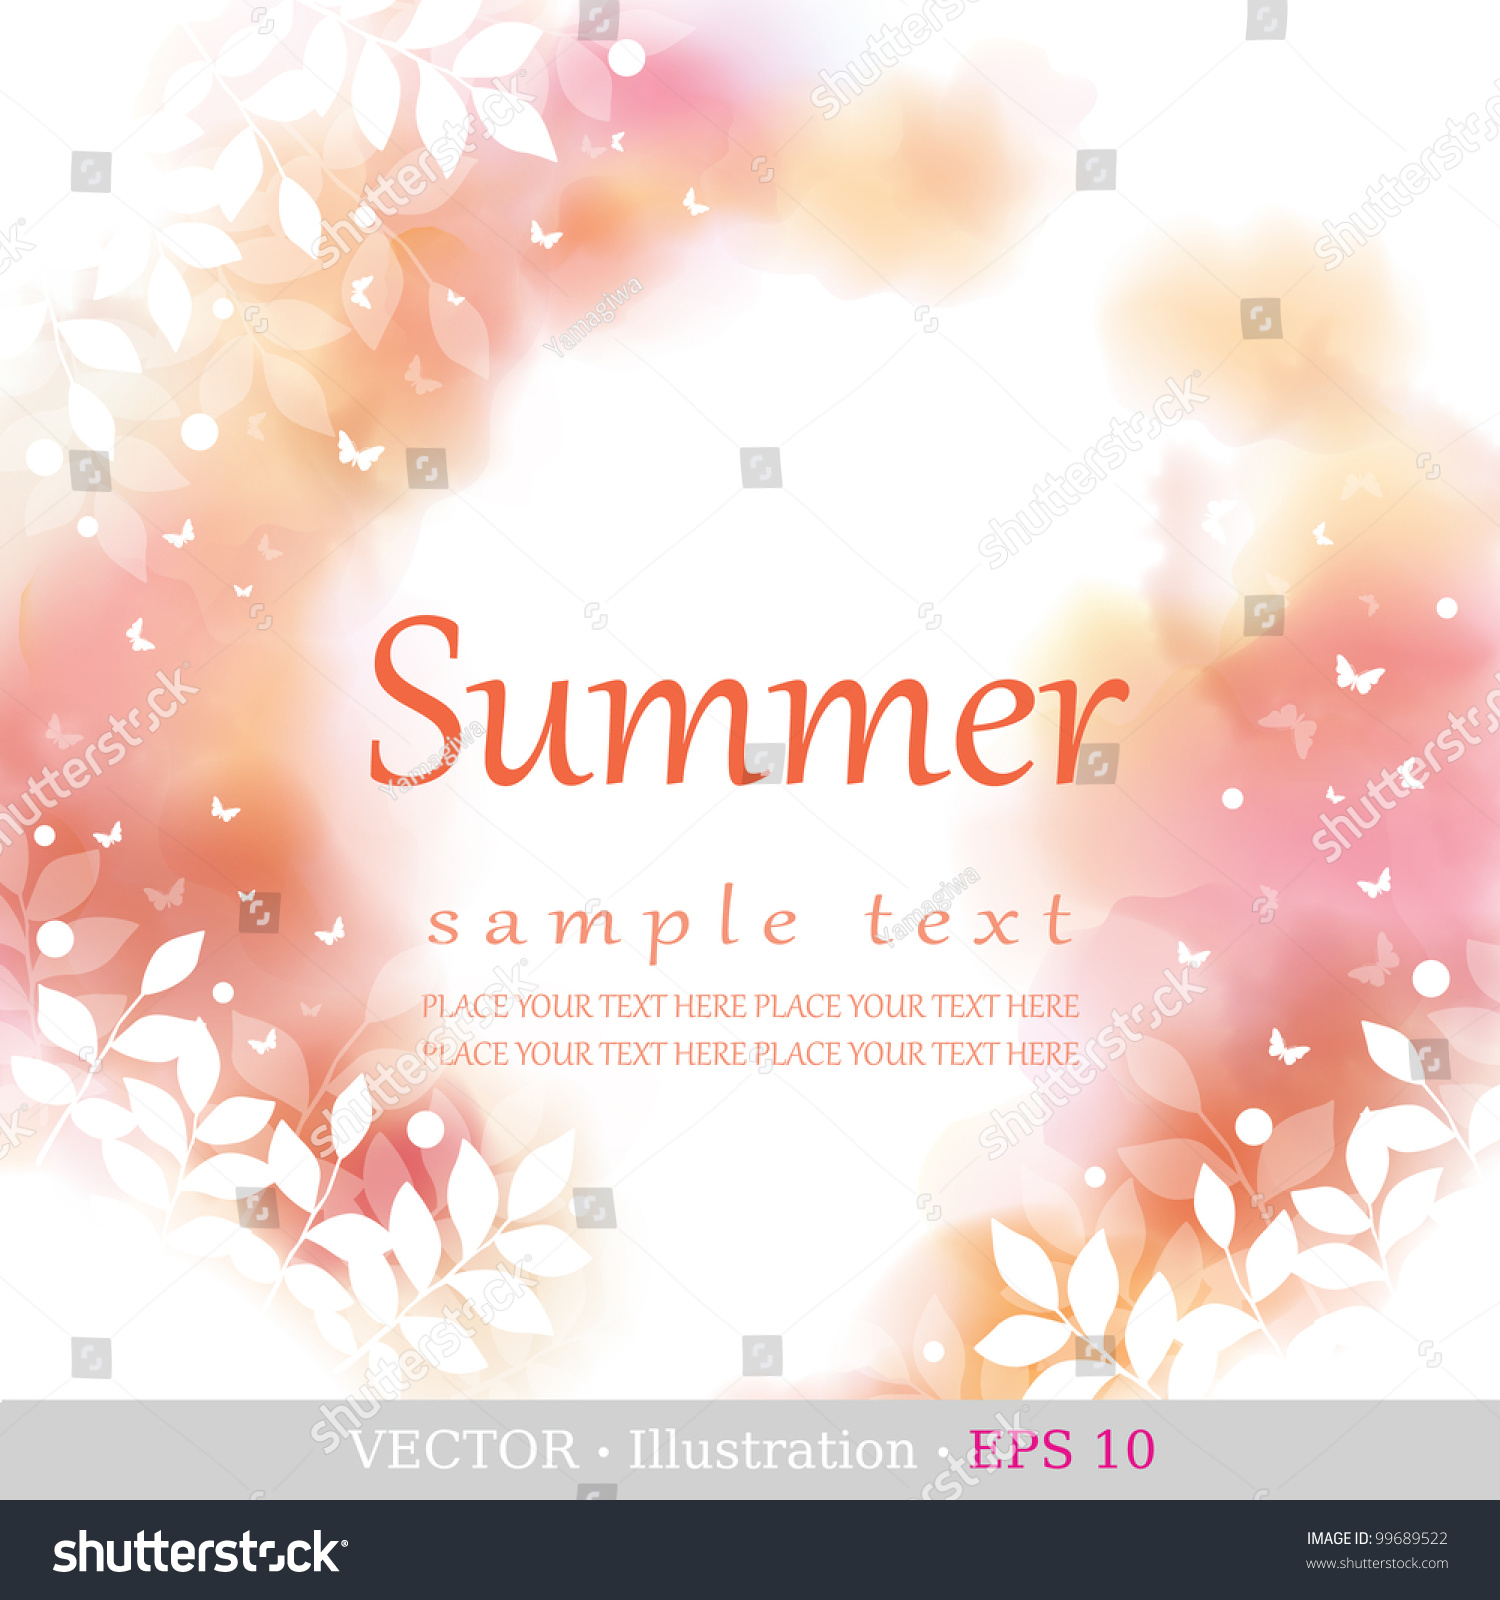 summer four seasons calendar days year stock vector  four seasons calendar days of the year cover of the title page colorful